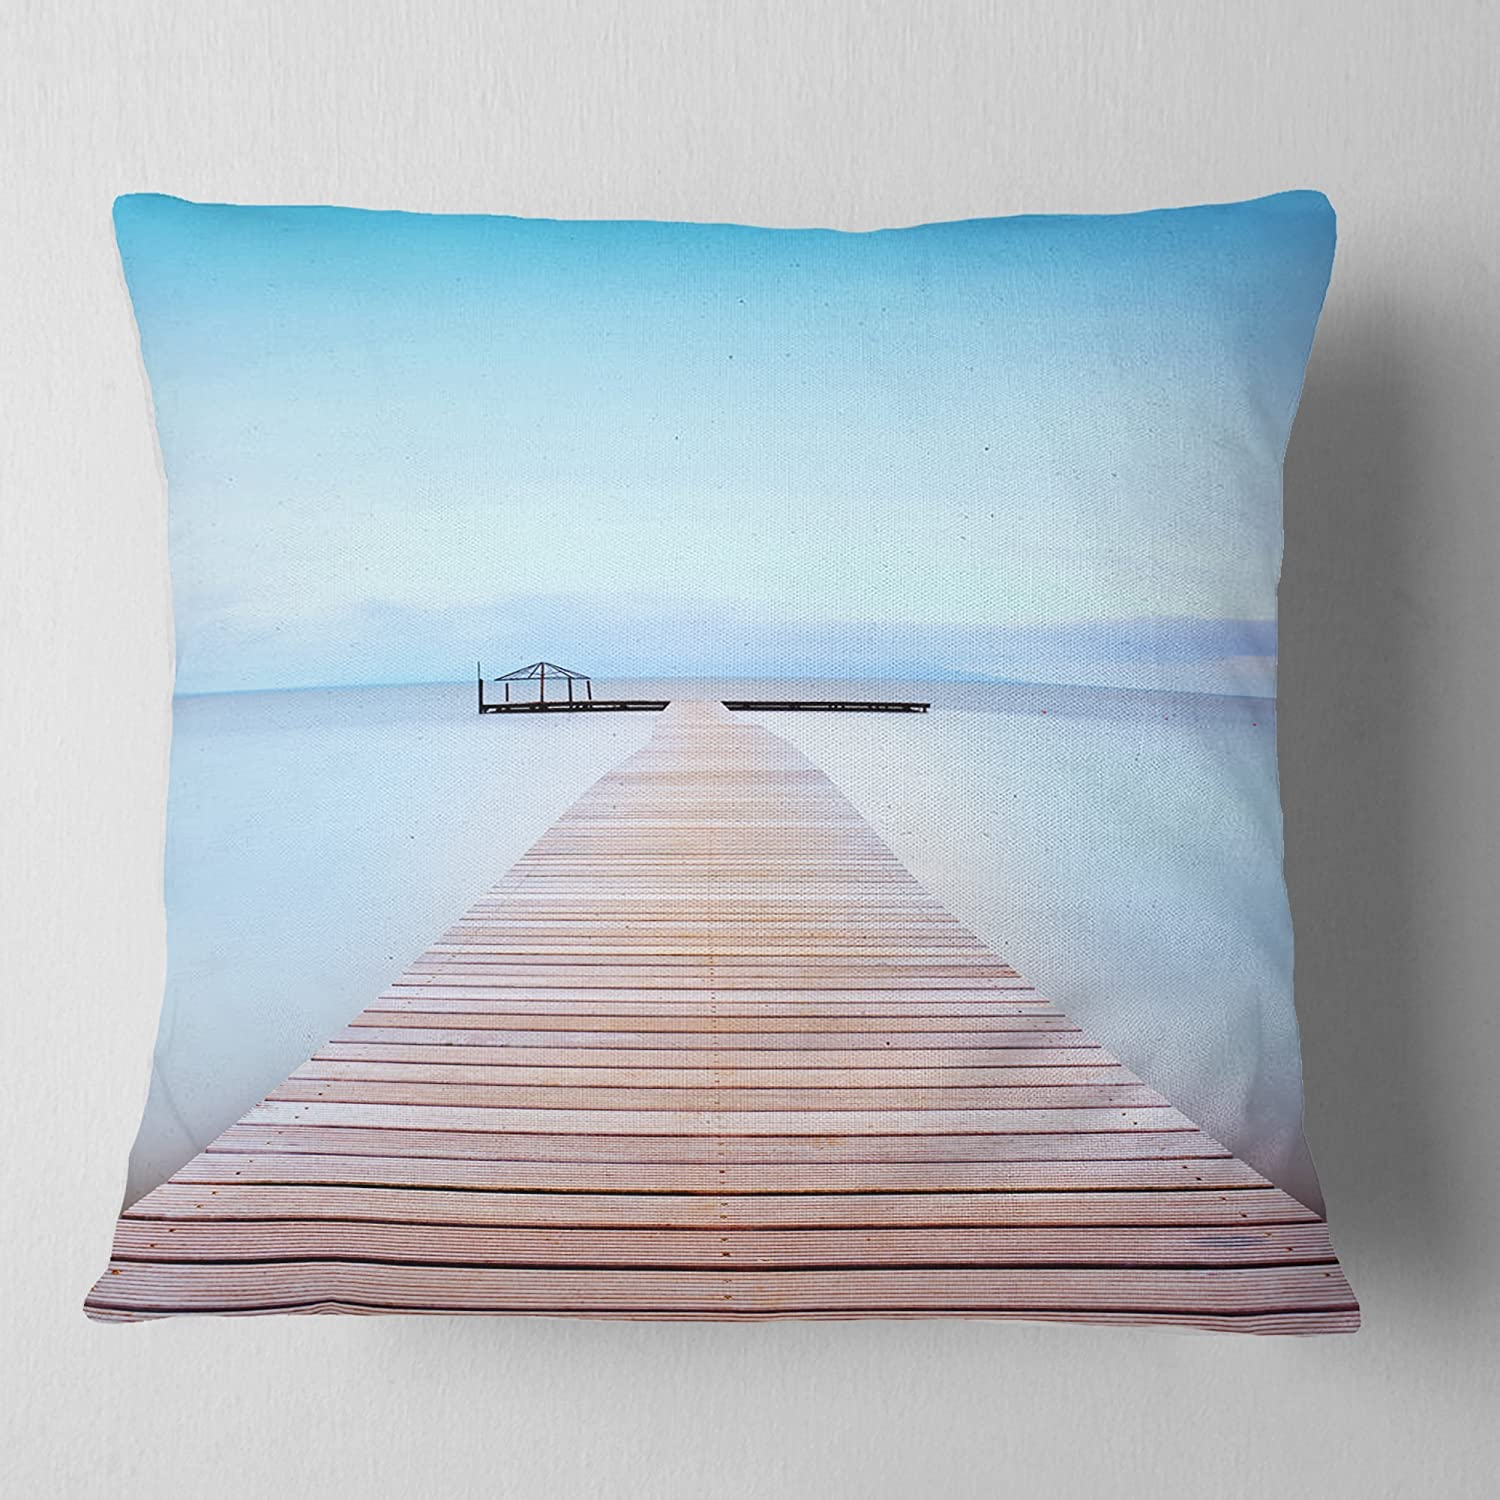 Designart Cu8356 18 18 Wooden Pier In Cold Atmosphere Seascape Cushion Cover For Living Room Sofa